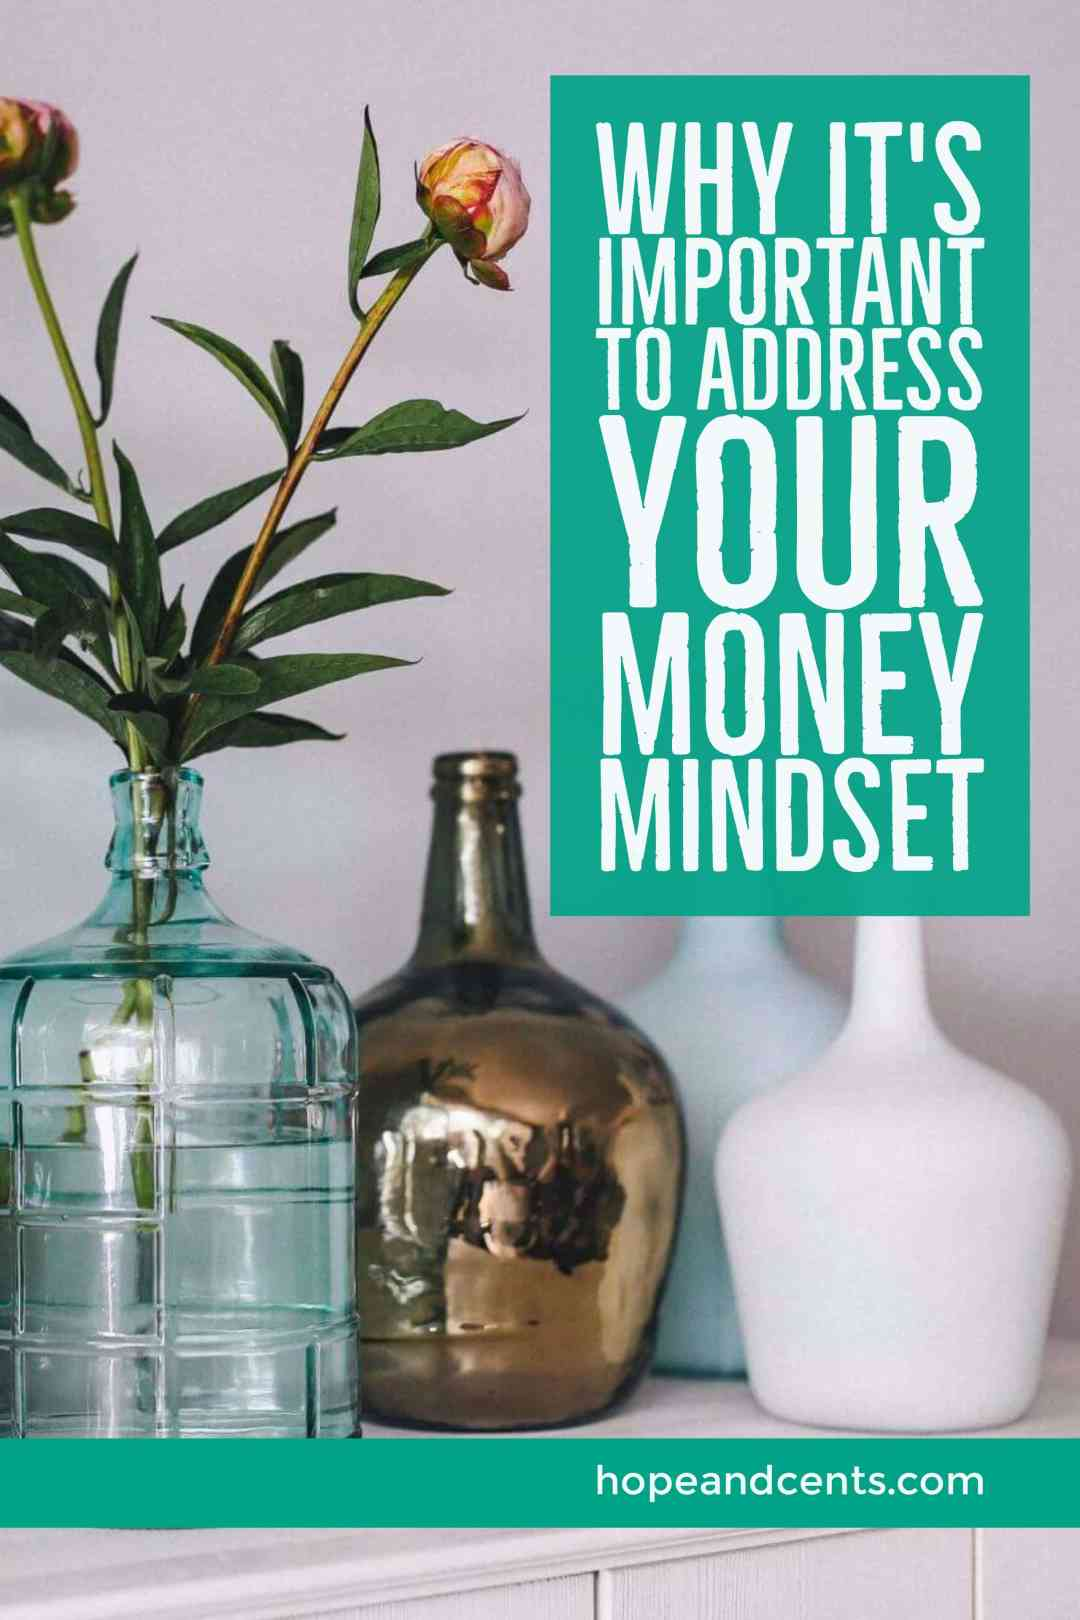 It's easy to focus on the practical steps to pay off debt, save money, or meet other financial goals, but have you taken the time to address your money mindset? Love how this explains what shapes our attitudes towards money.